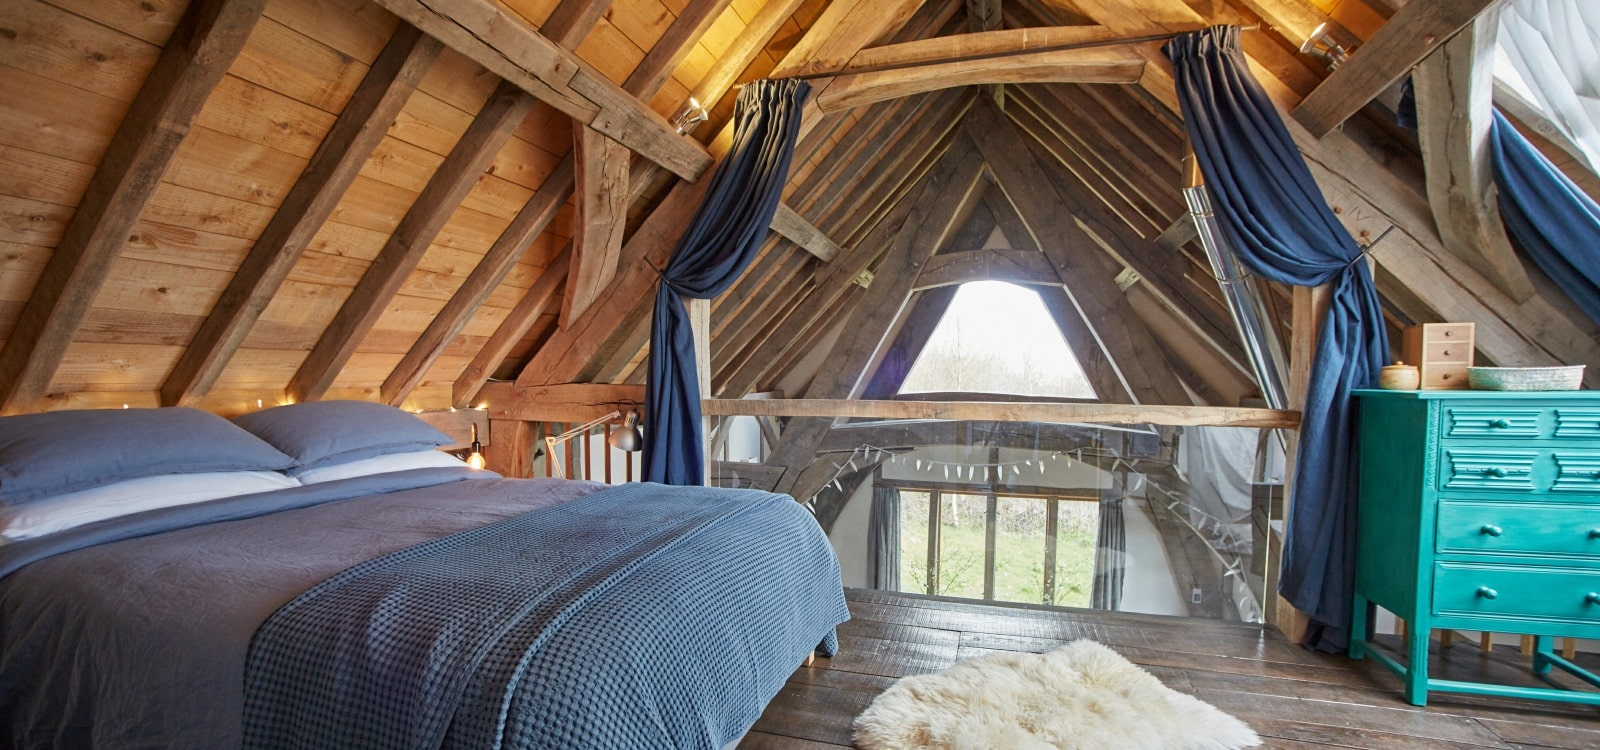 a comfortable double bed creates quality accommodation under oak beams